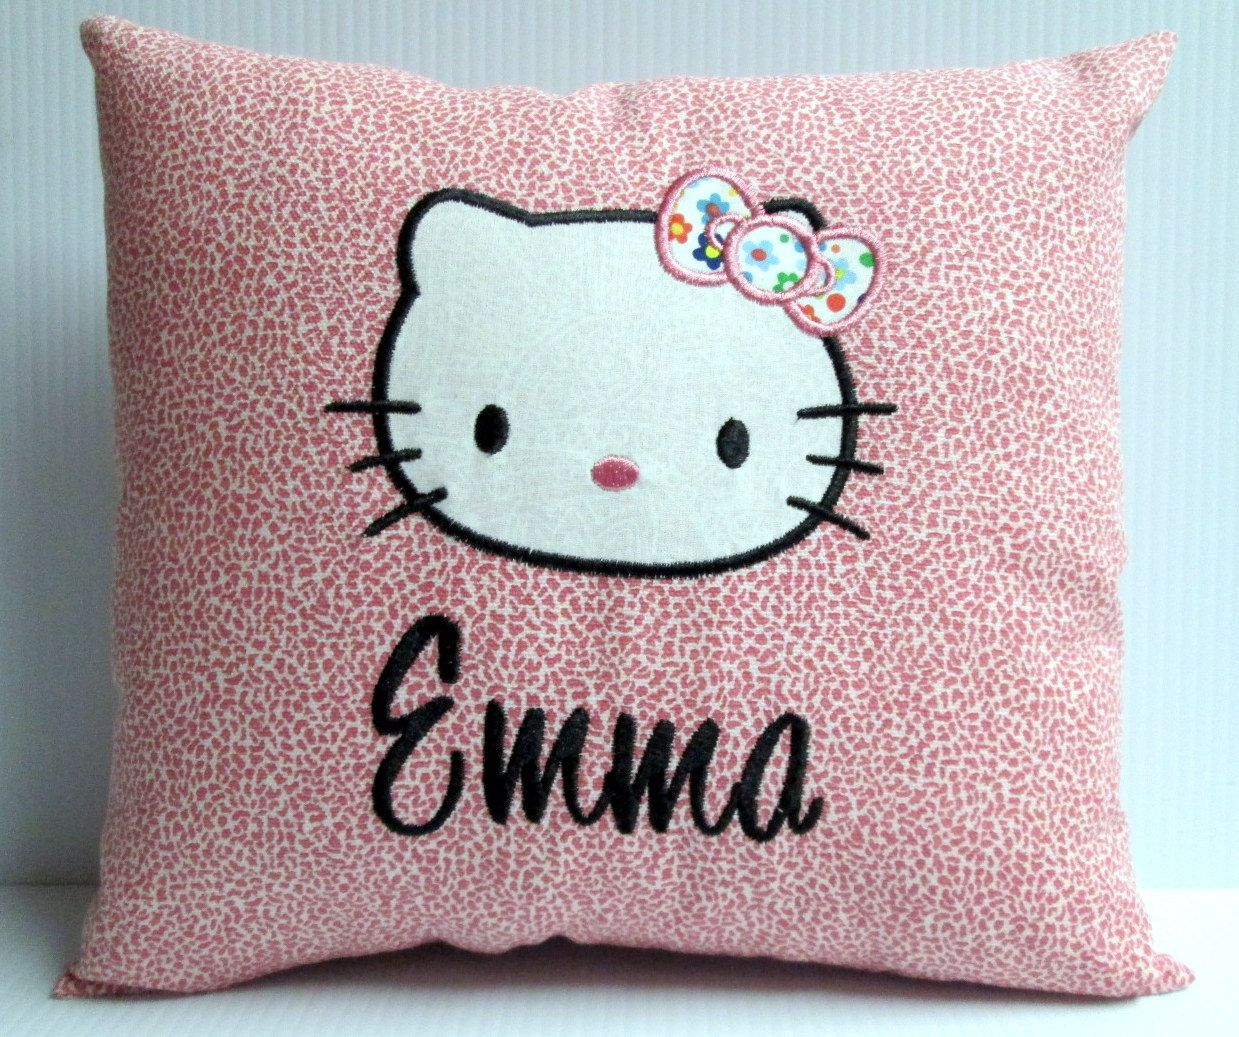 precious photo pillows most with together pillow peachy make this pillowcase frantic to brides throw wa cases diy personalized high set pillowcases is cover way that